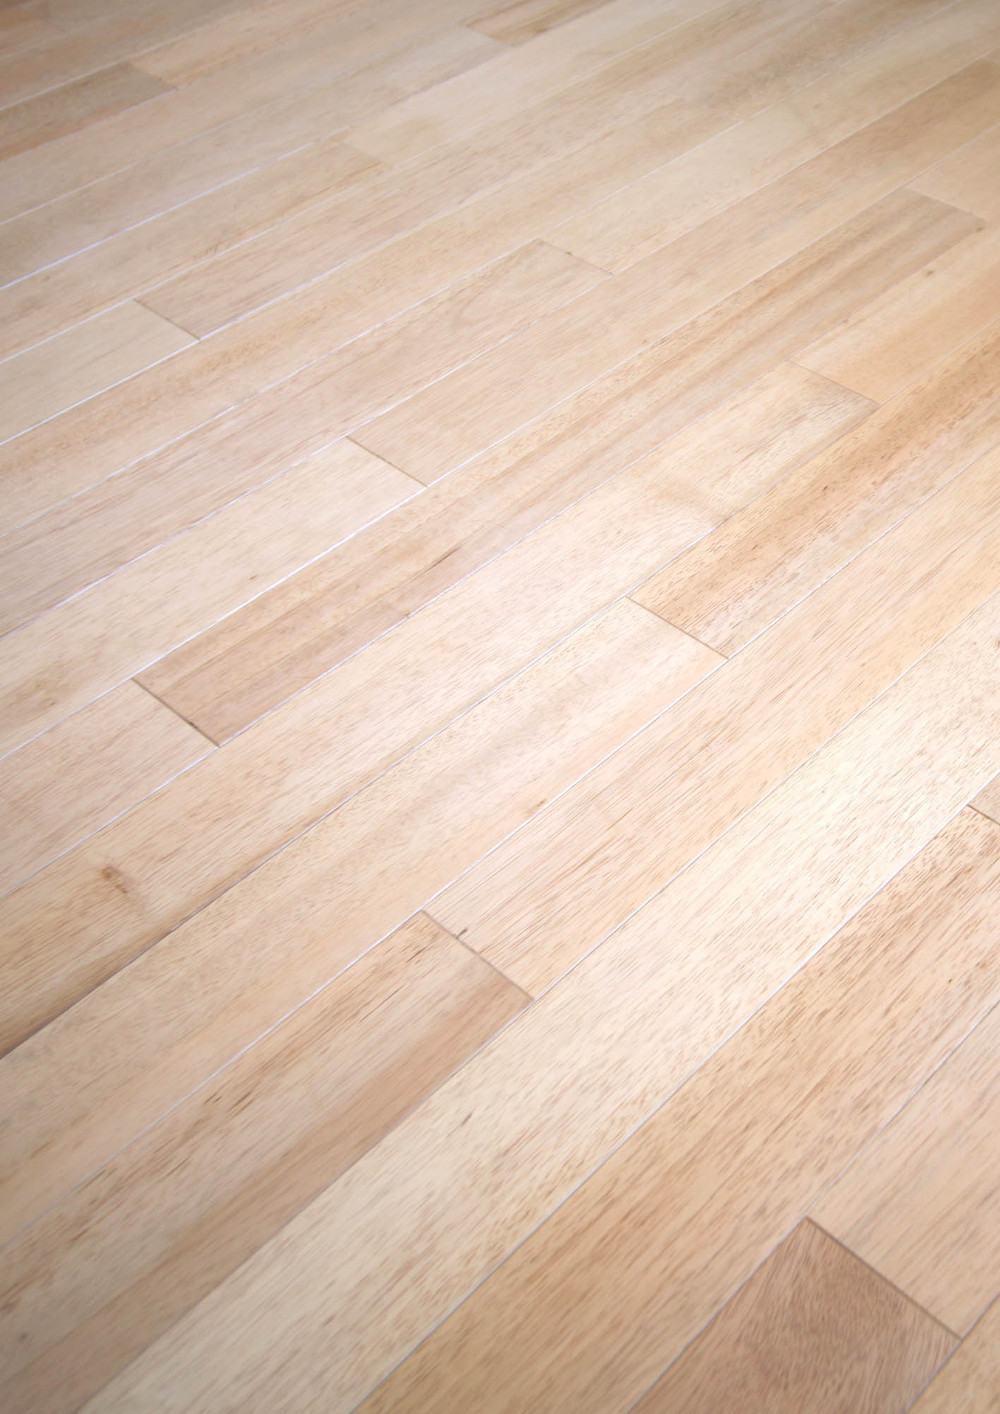 Durable And Healthy Indoor Flooring MATERIALS At Reasonable Prices